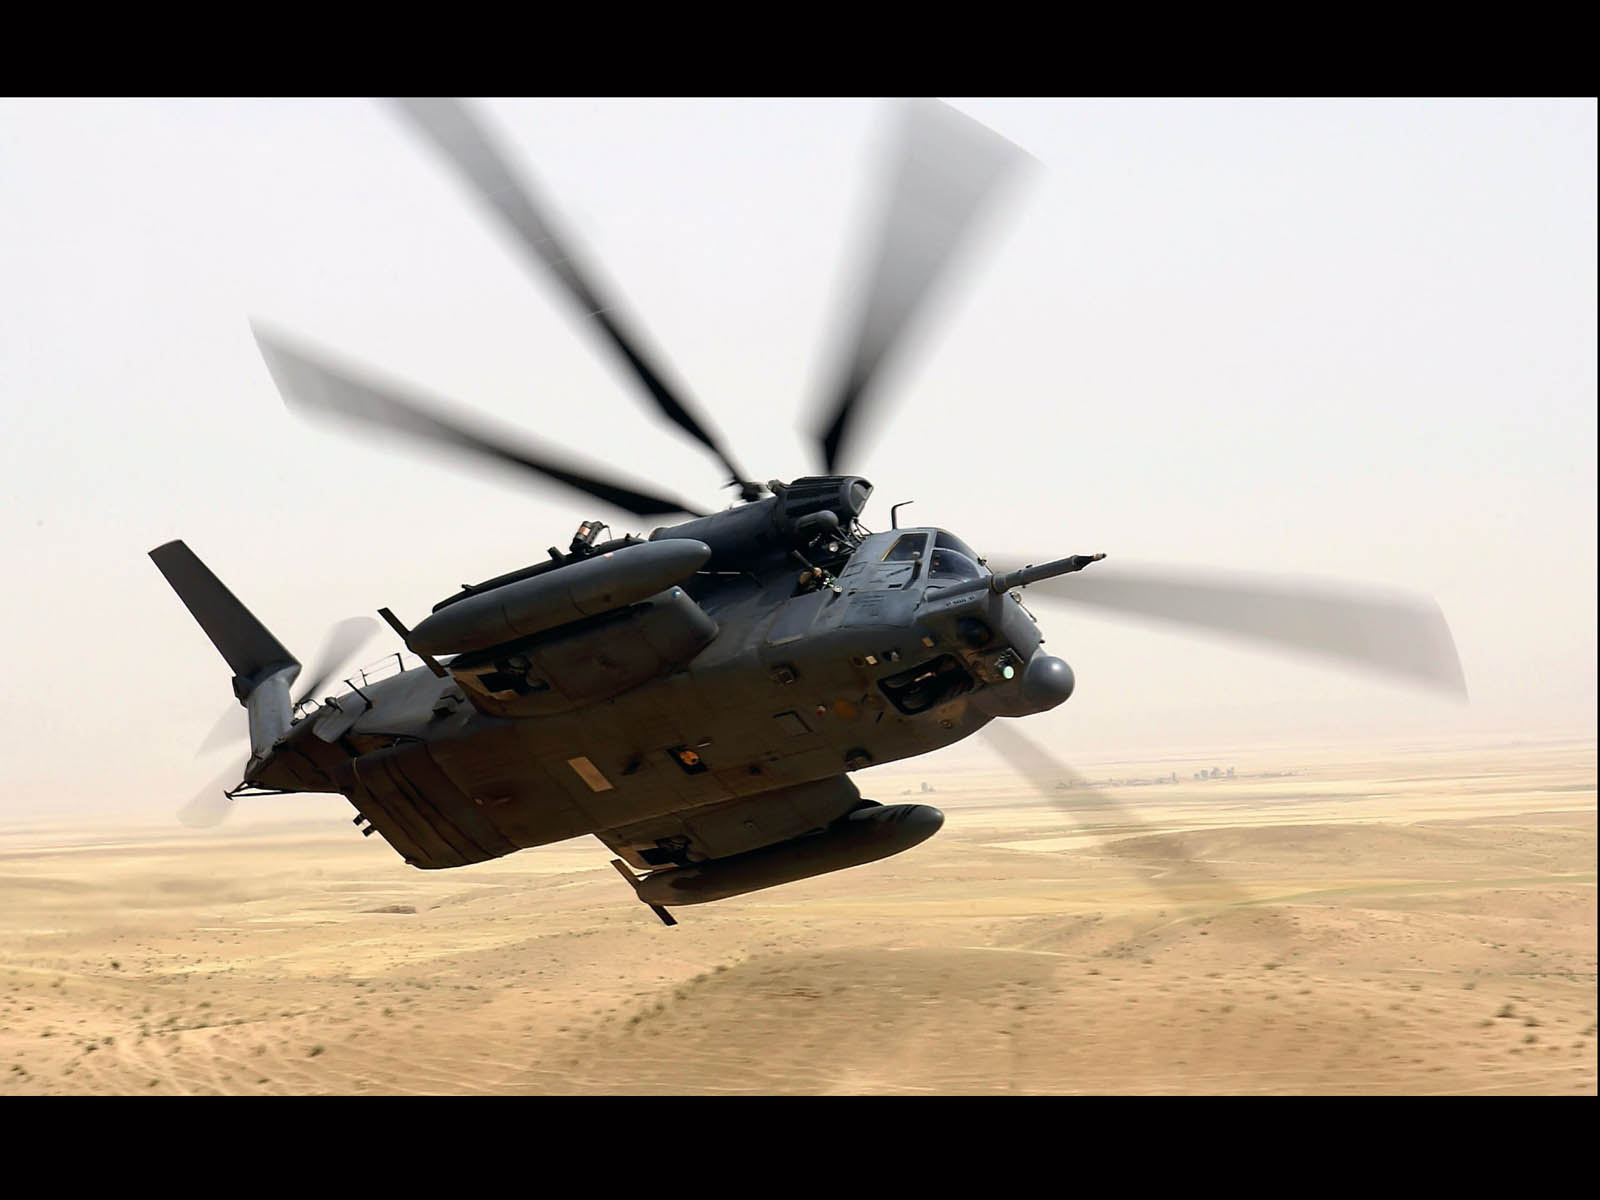 older helicopters with Mh 53 Pave Low Helicopter Wallpapers on 01913 as well The Leonardo Version Of Helicopter likewise 12 Old Games Nintendo Switch 2018 further Tour Lasvegas Nights further Cartoon Army Helicopter.